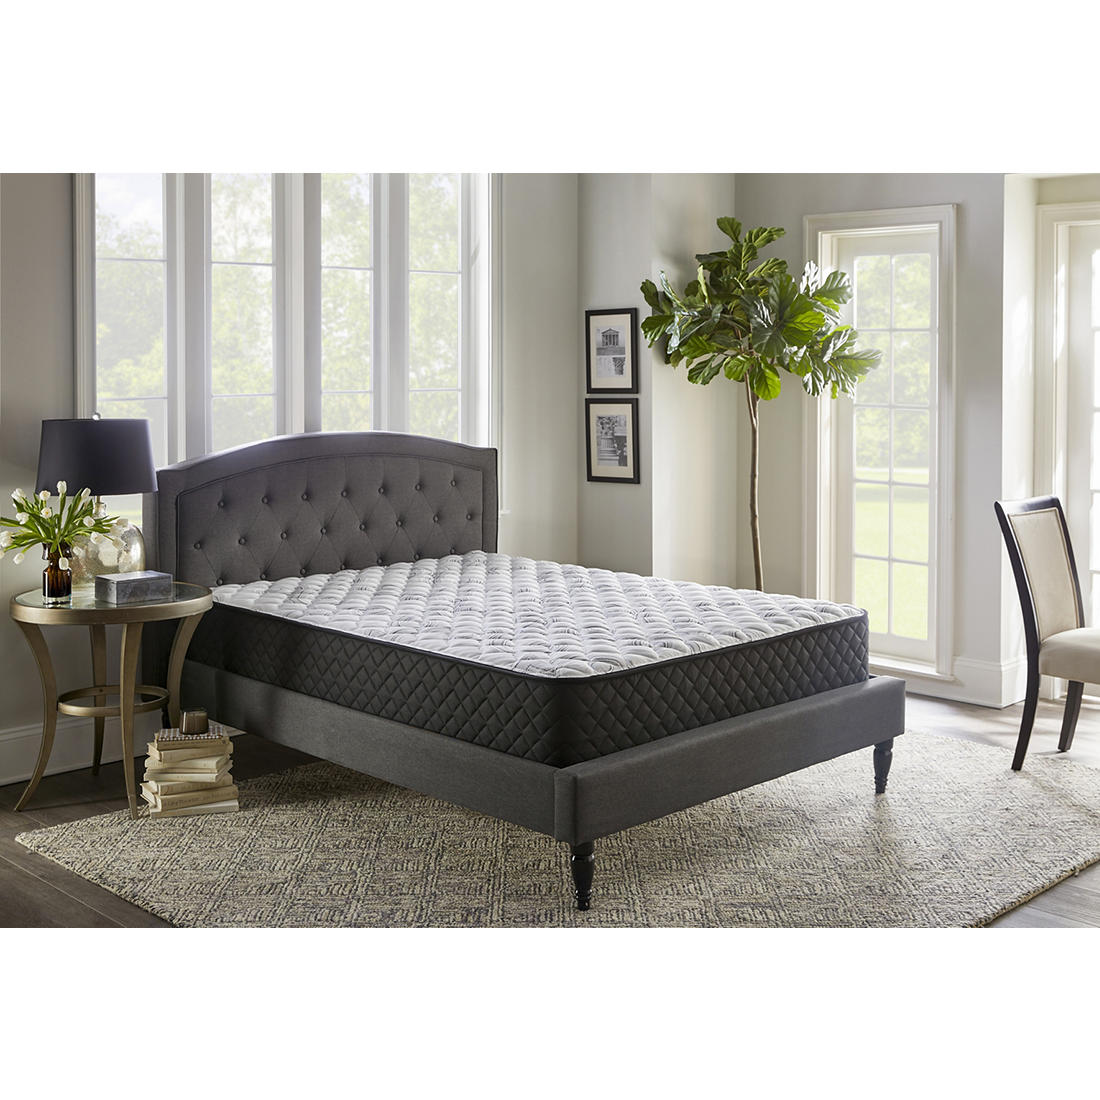 Queen Size Bed.Berkley Jensen Queen Size Firm Support Comfort Select Mattress